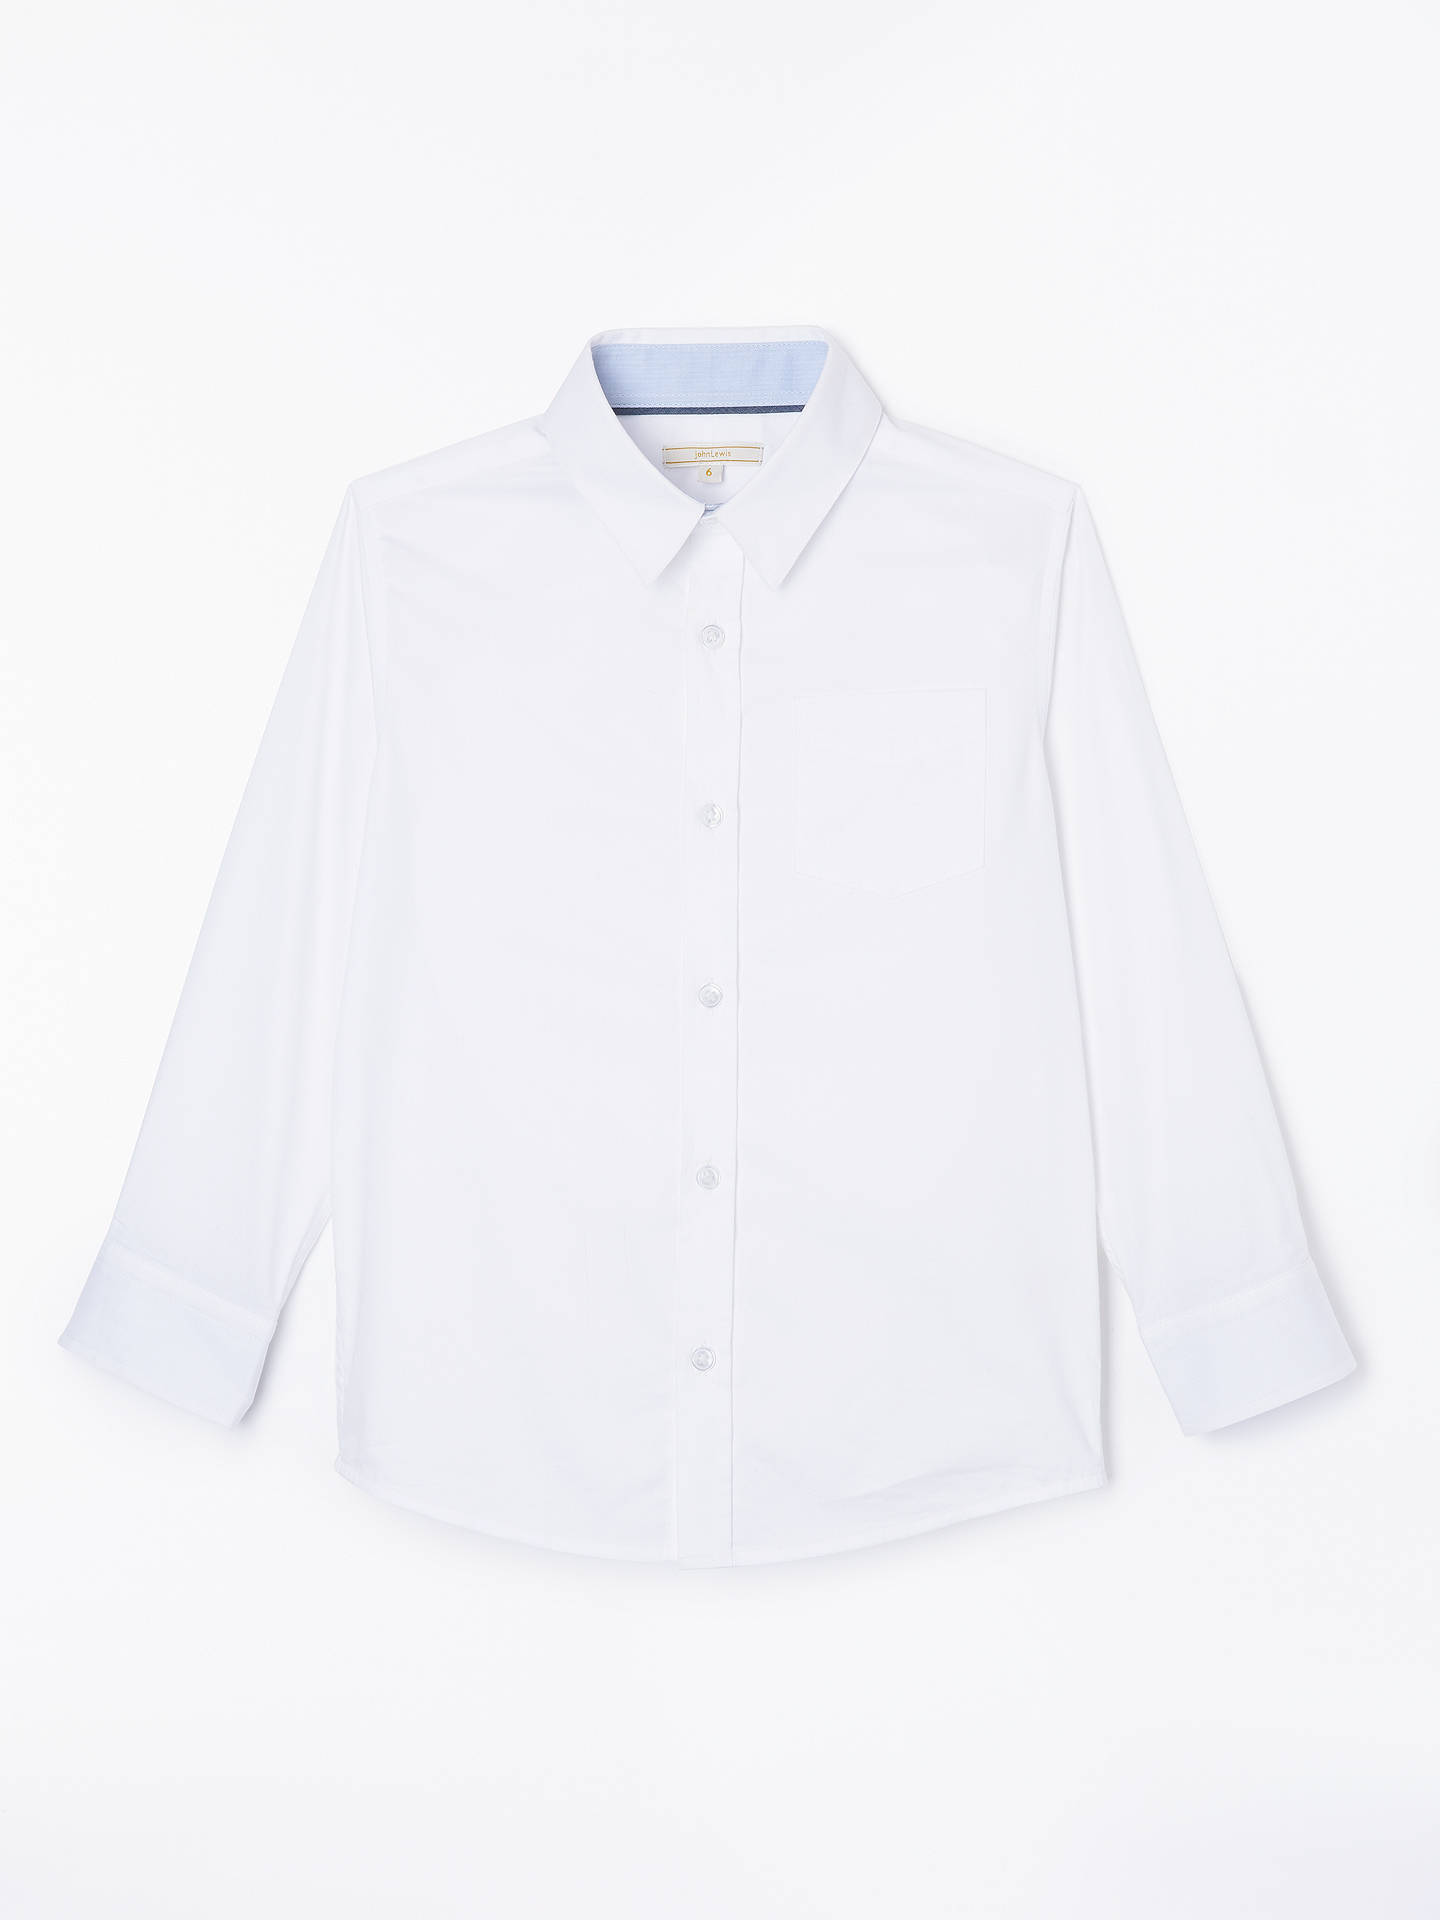 BuyJohn Lewis & Partners Heirloom Collection Boys' Plain Textured Herringbone Shirt, White, 2 years Online at johnlewis.com